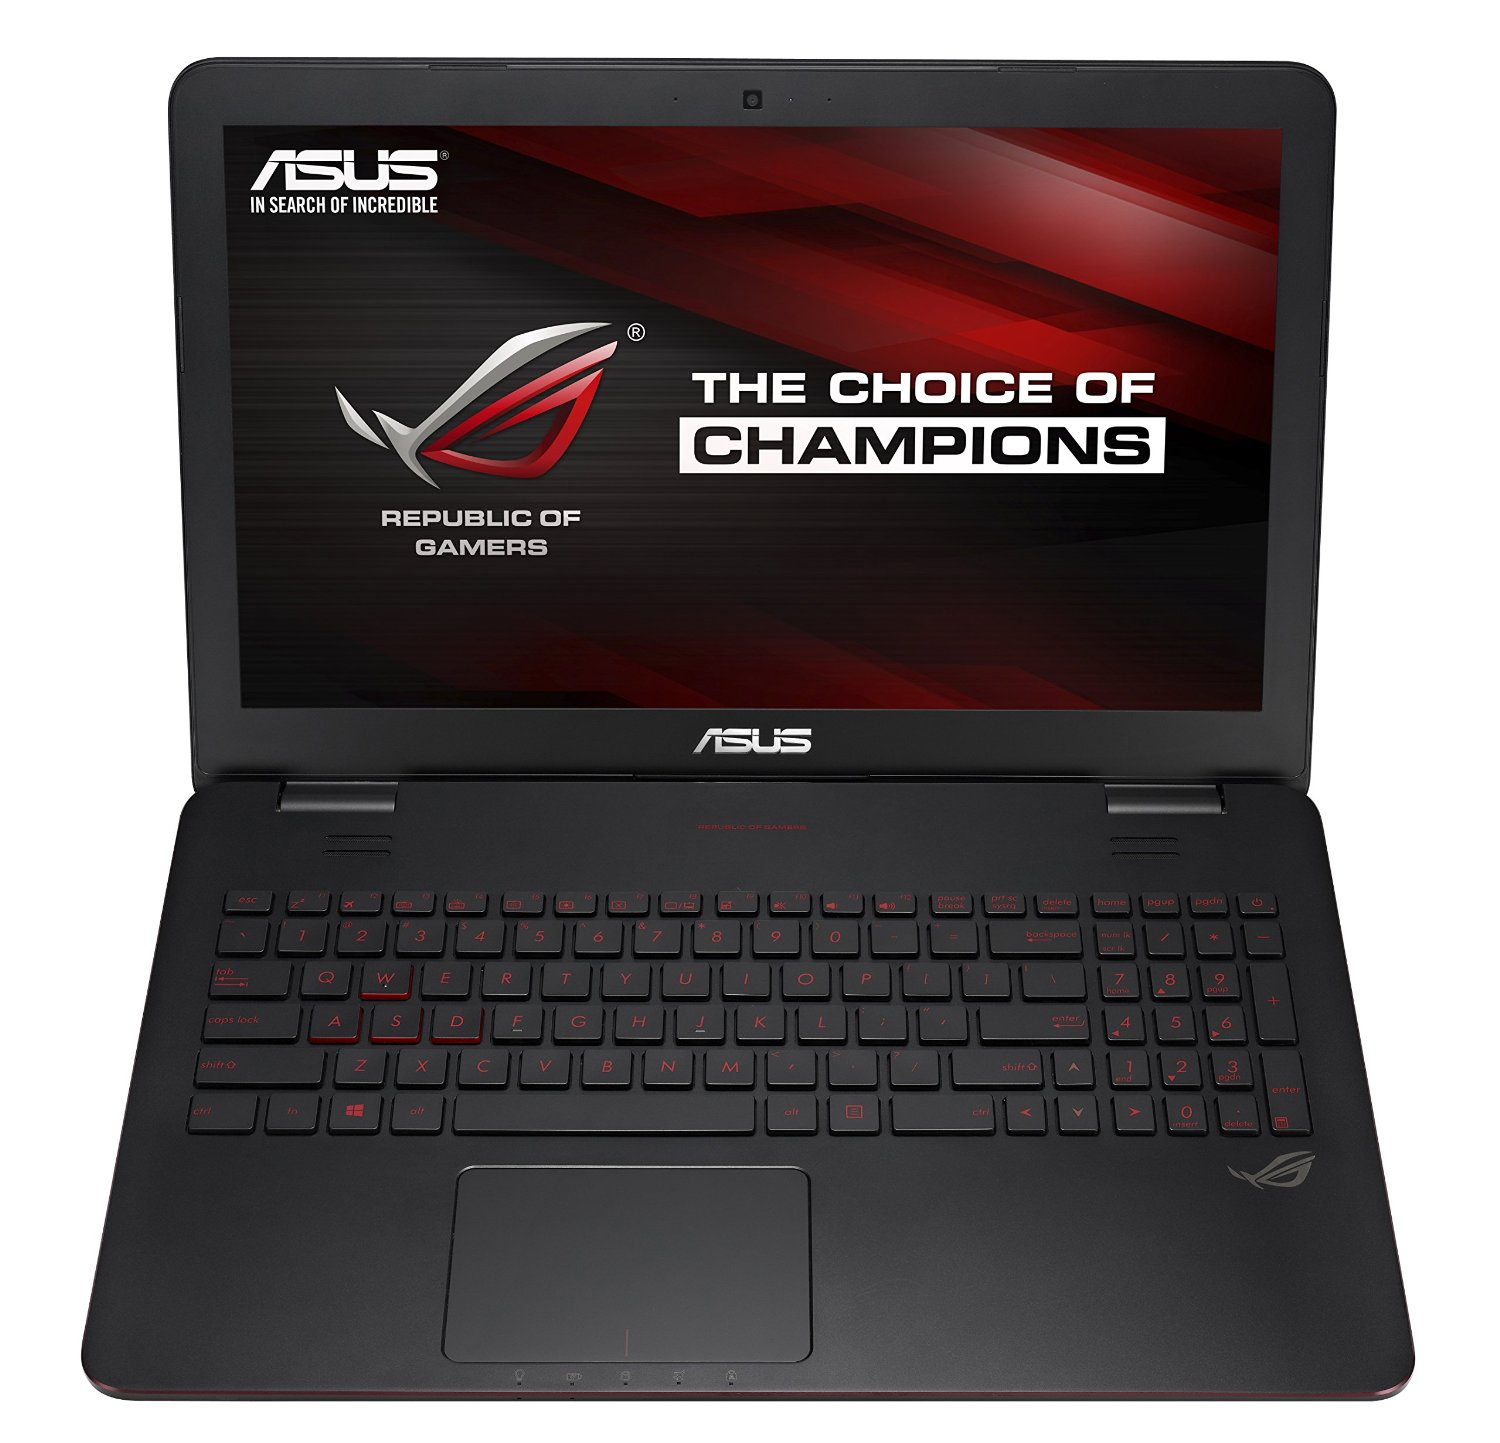 ASUS ROG GL551JW-DS71 15.6 inch Gaming Laptop